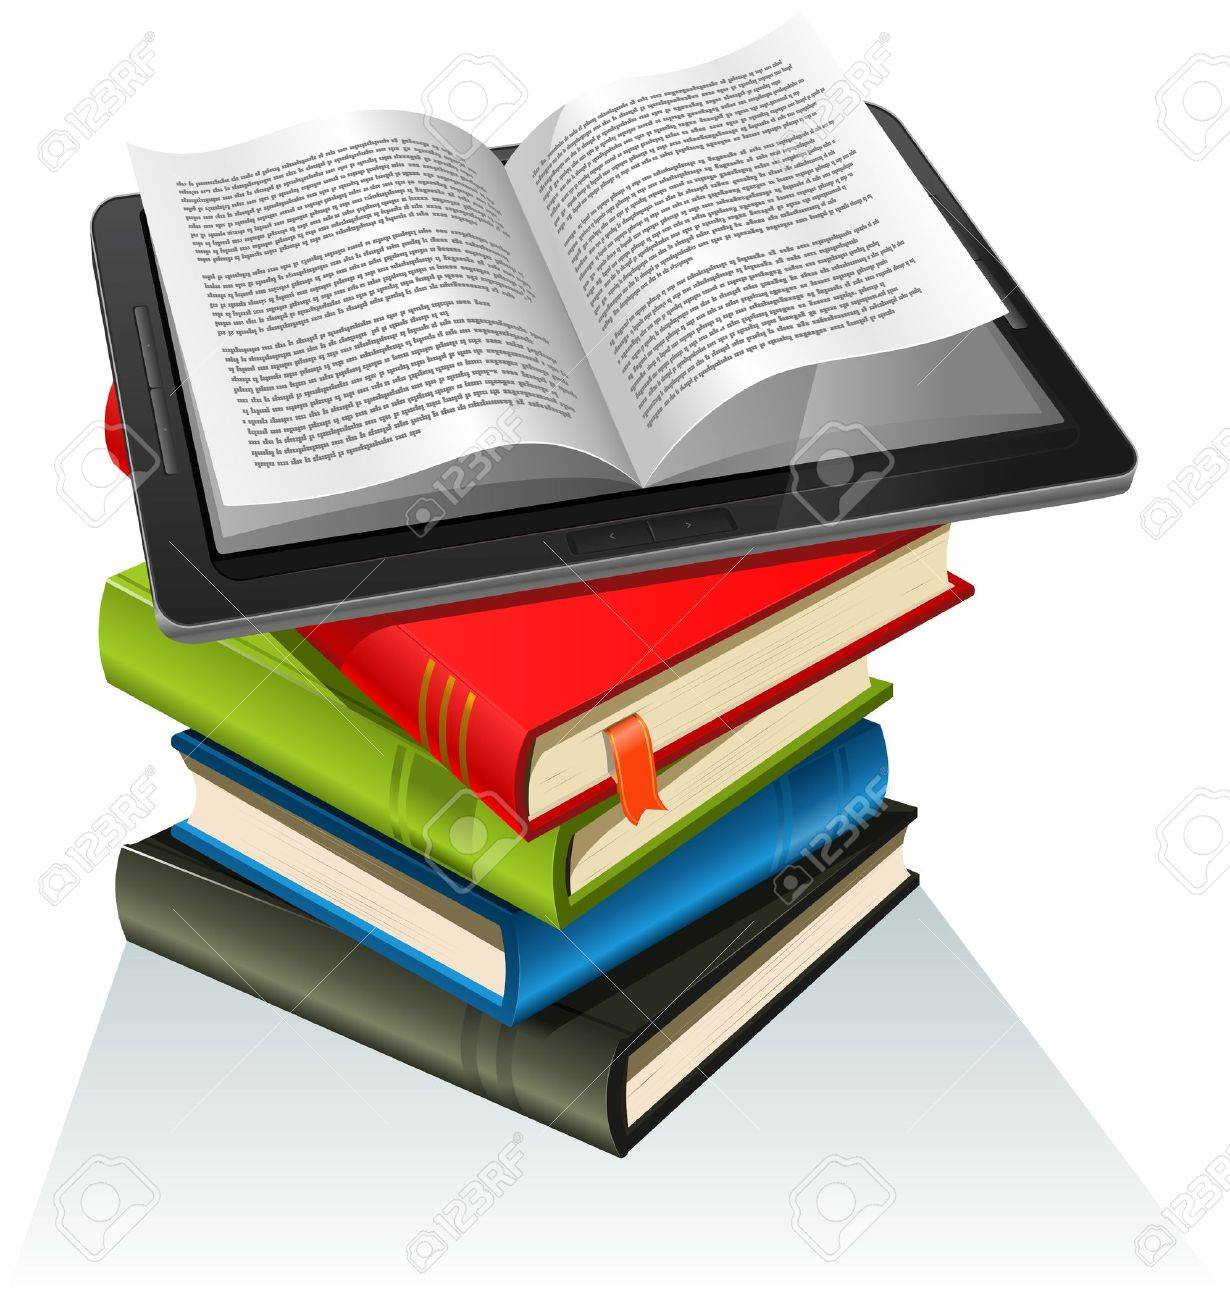 Illustration of a tablet pc e-book set upon a book stack. Imaginary model of e-book not made from a real existing product or copyrighted model Stock Vector - 11943676